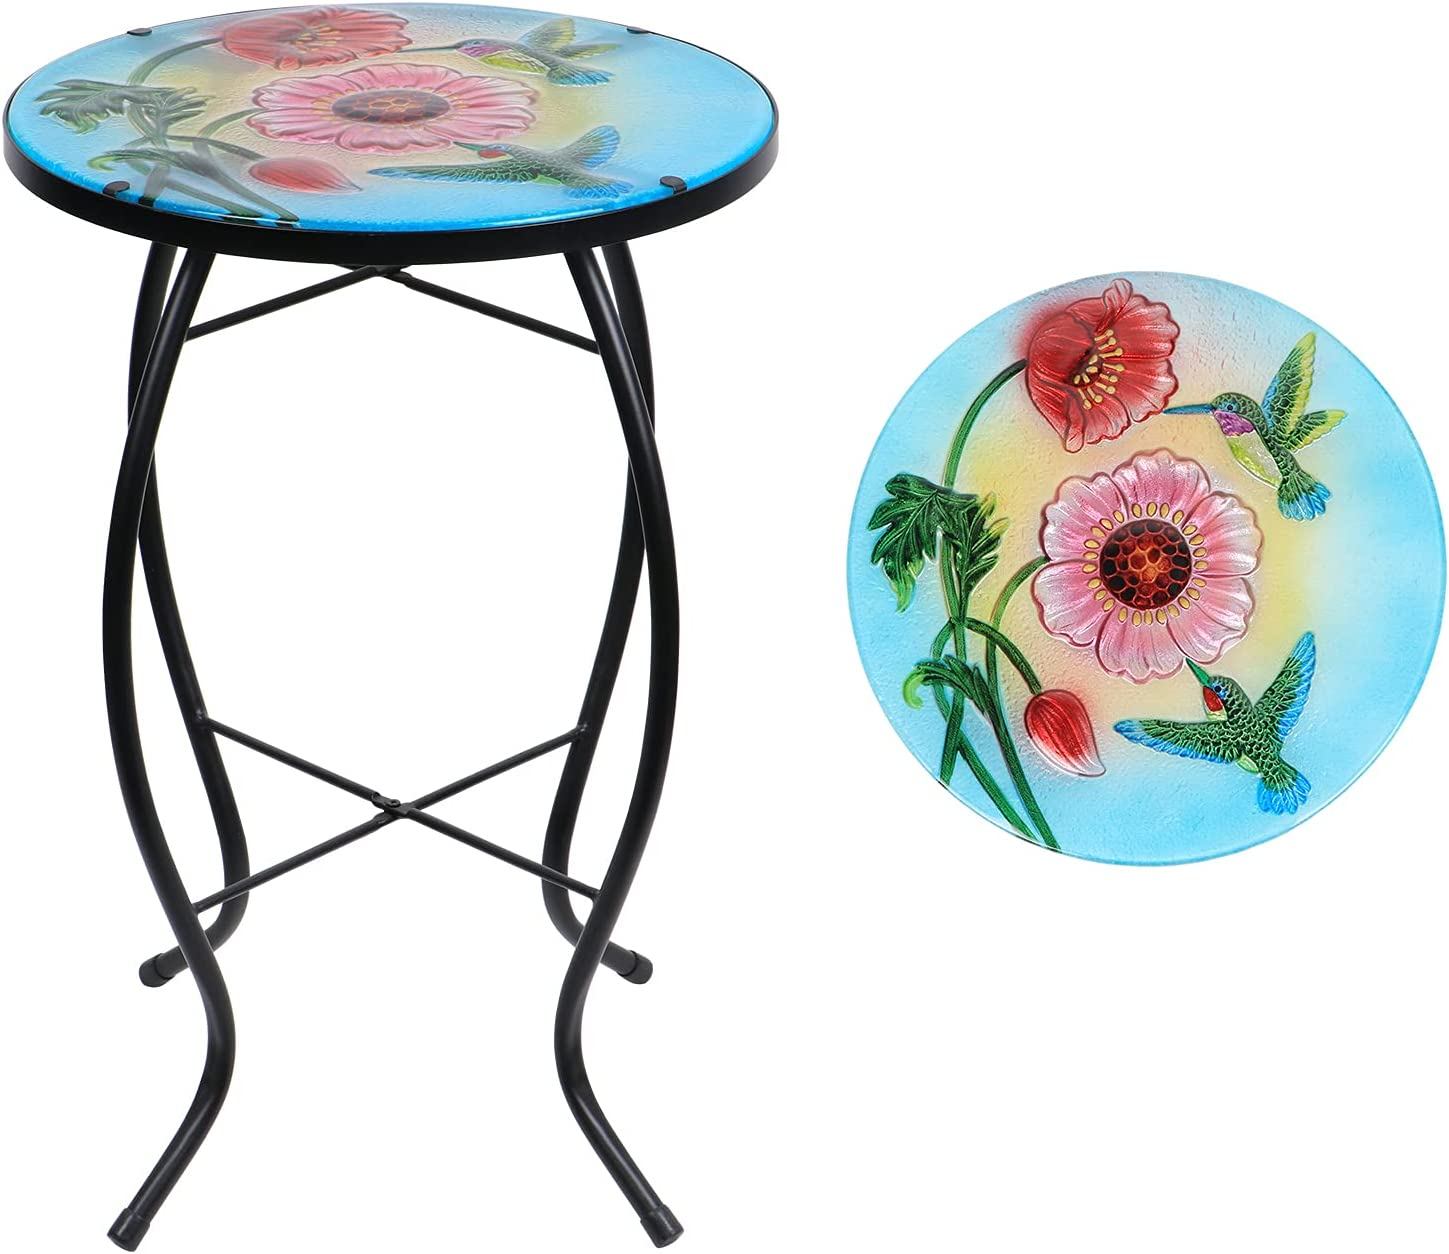 Outdoor Side Table-Patio End Table - Mosaic Accent Table, Flowers and Hummingbirds Glass Small Table Round Side Nightstands for Indoor Garden Plant Stand